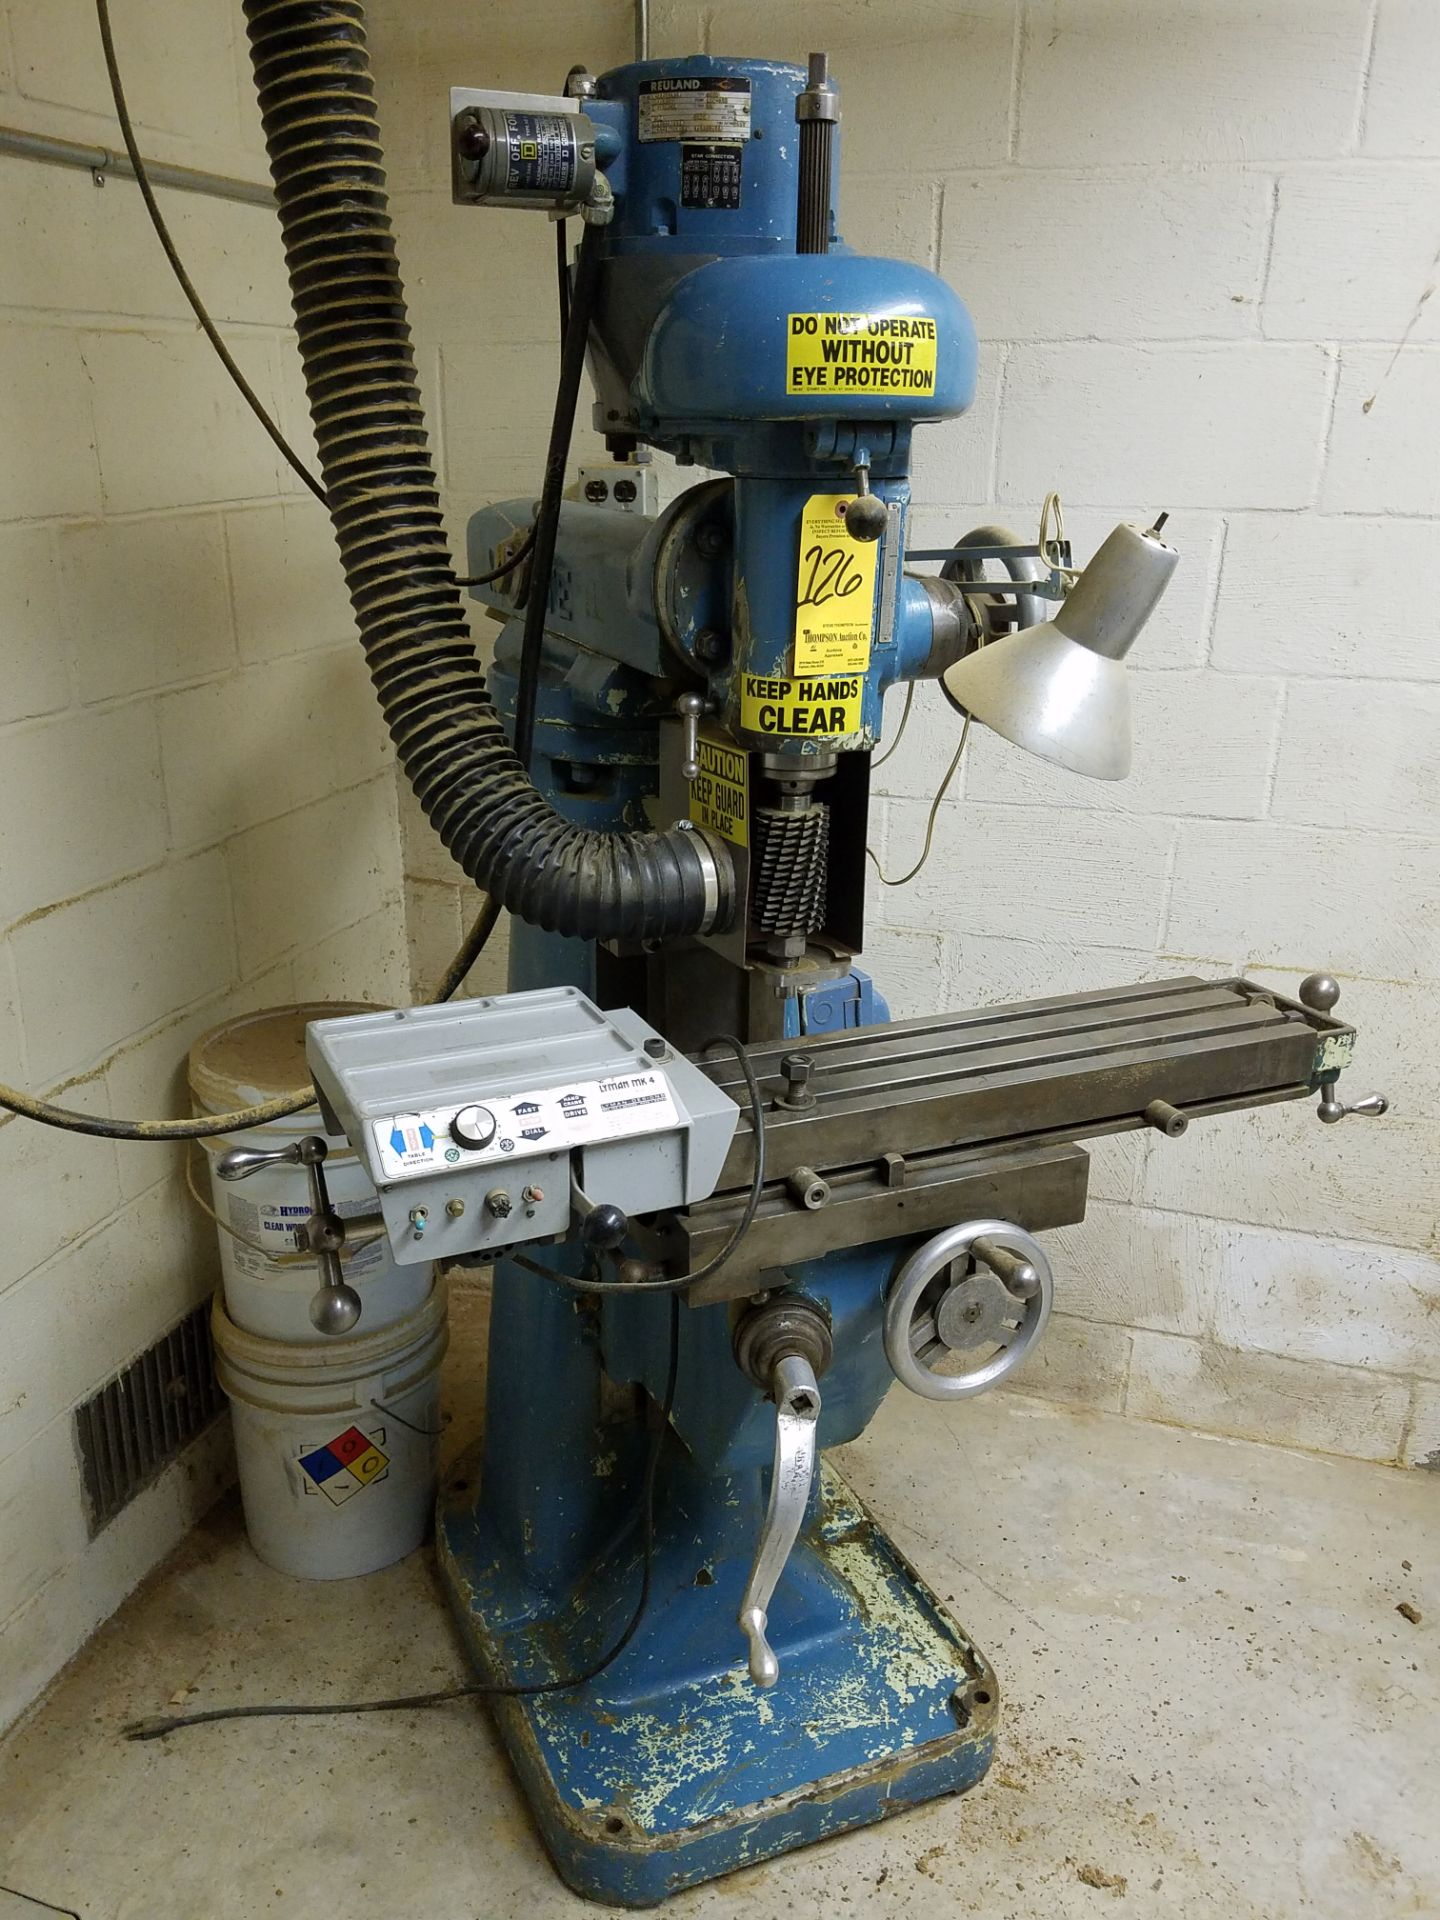 Lotto 126 - U.S. Machine Tool/Millrite Model MVN Vertical Mill, 1 HP, Lyman Power Table Feed, Loading Fee $50.00